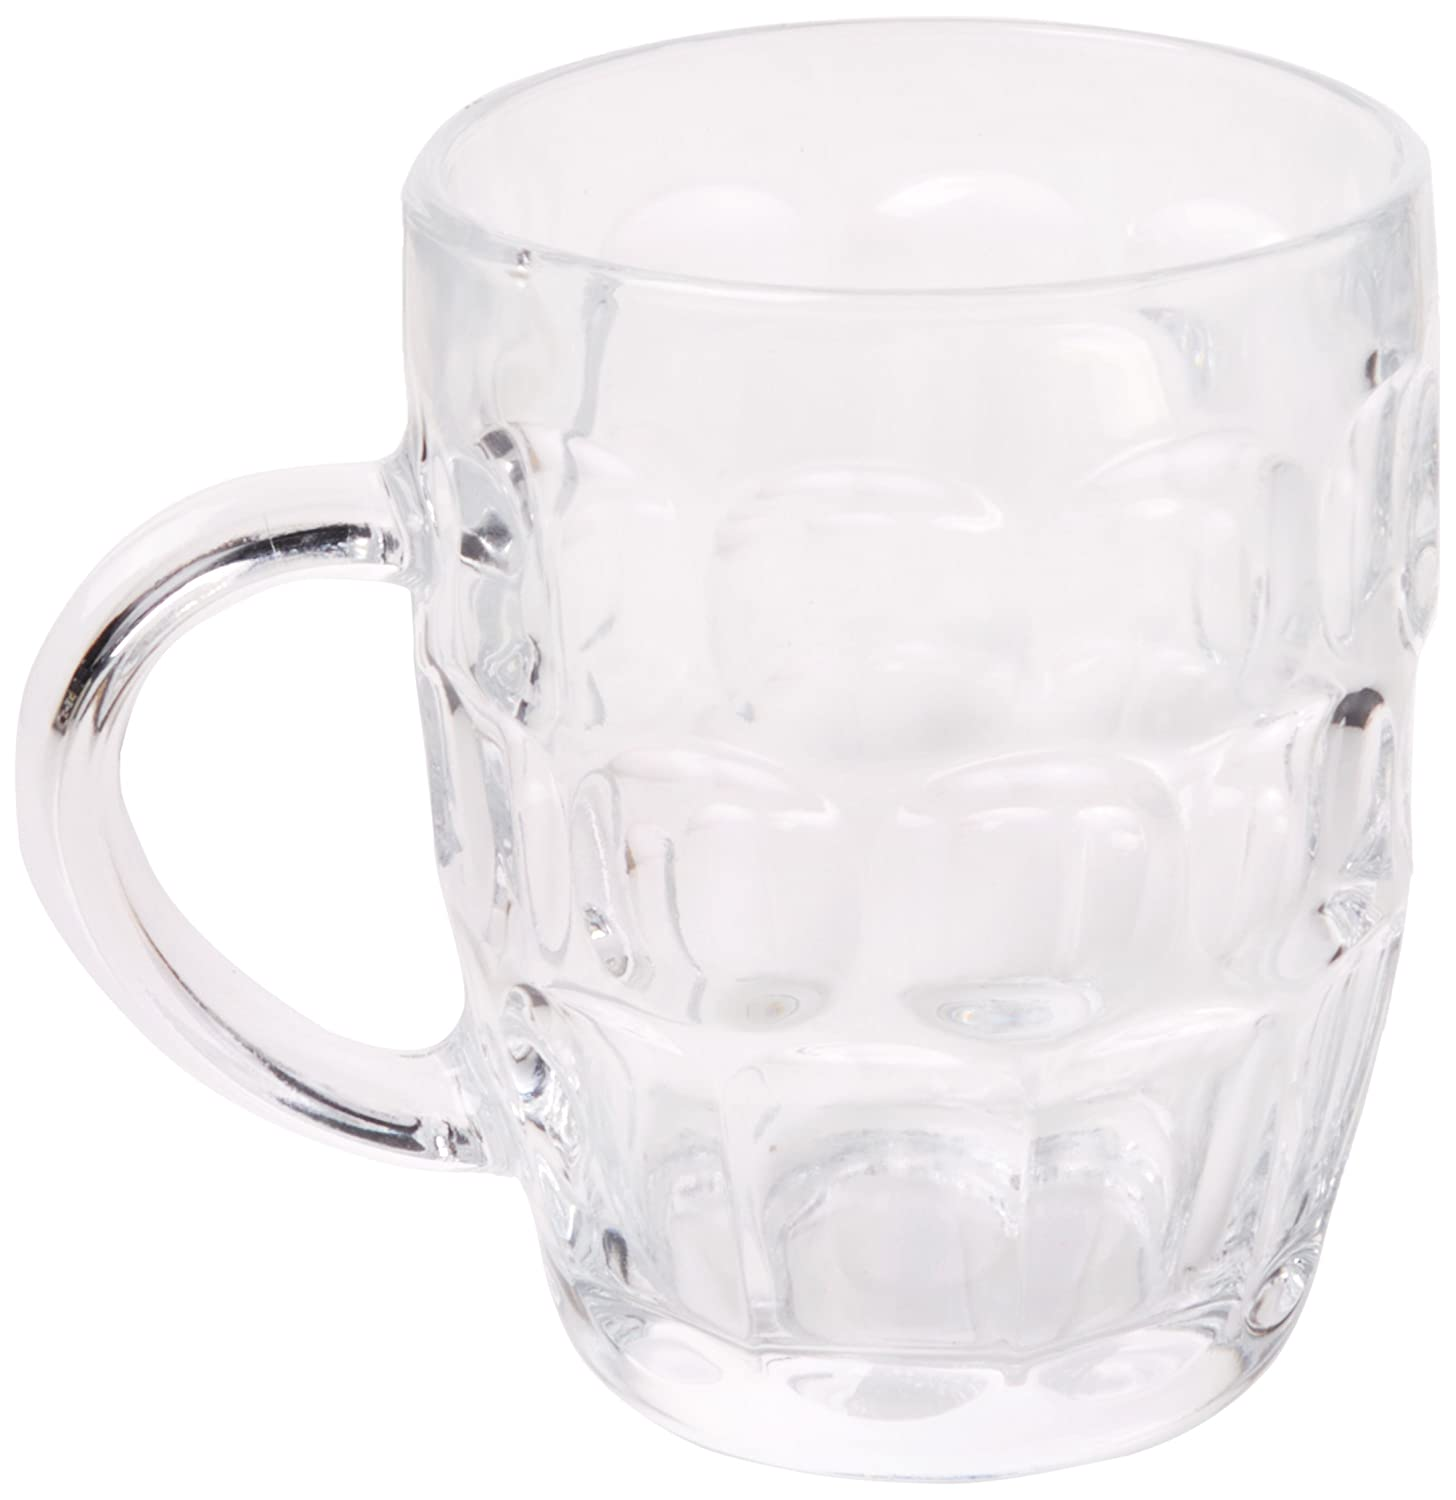 Arcoroc Britannia Traditional Beer Pint Tankards Dimpled Beer Stein Mug Glass 19.70oz / 560ml Set of 4 Arc International Others